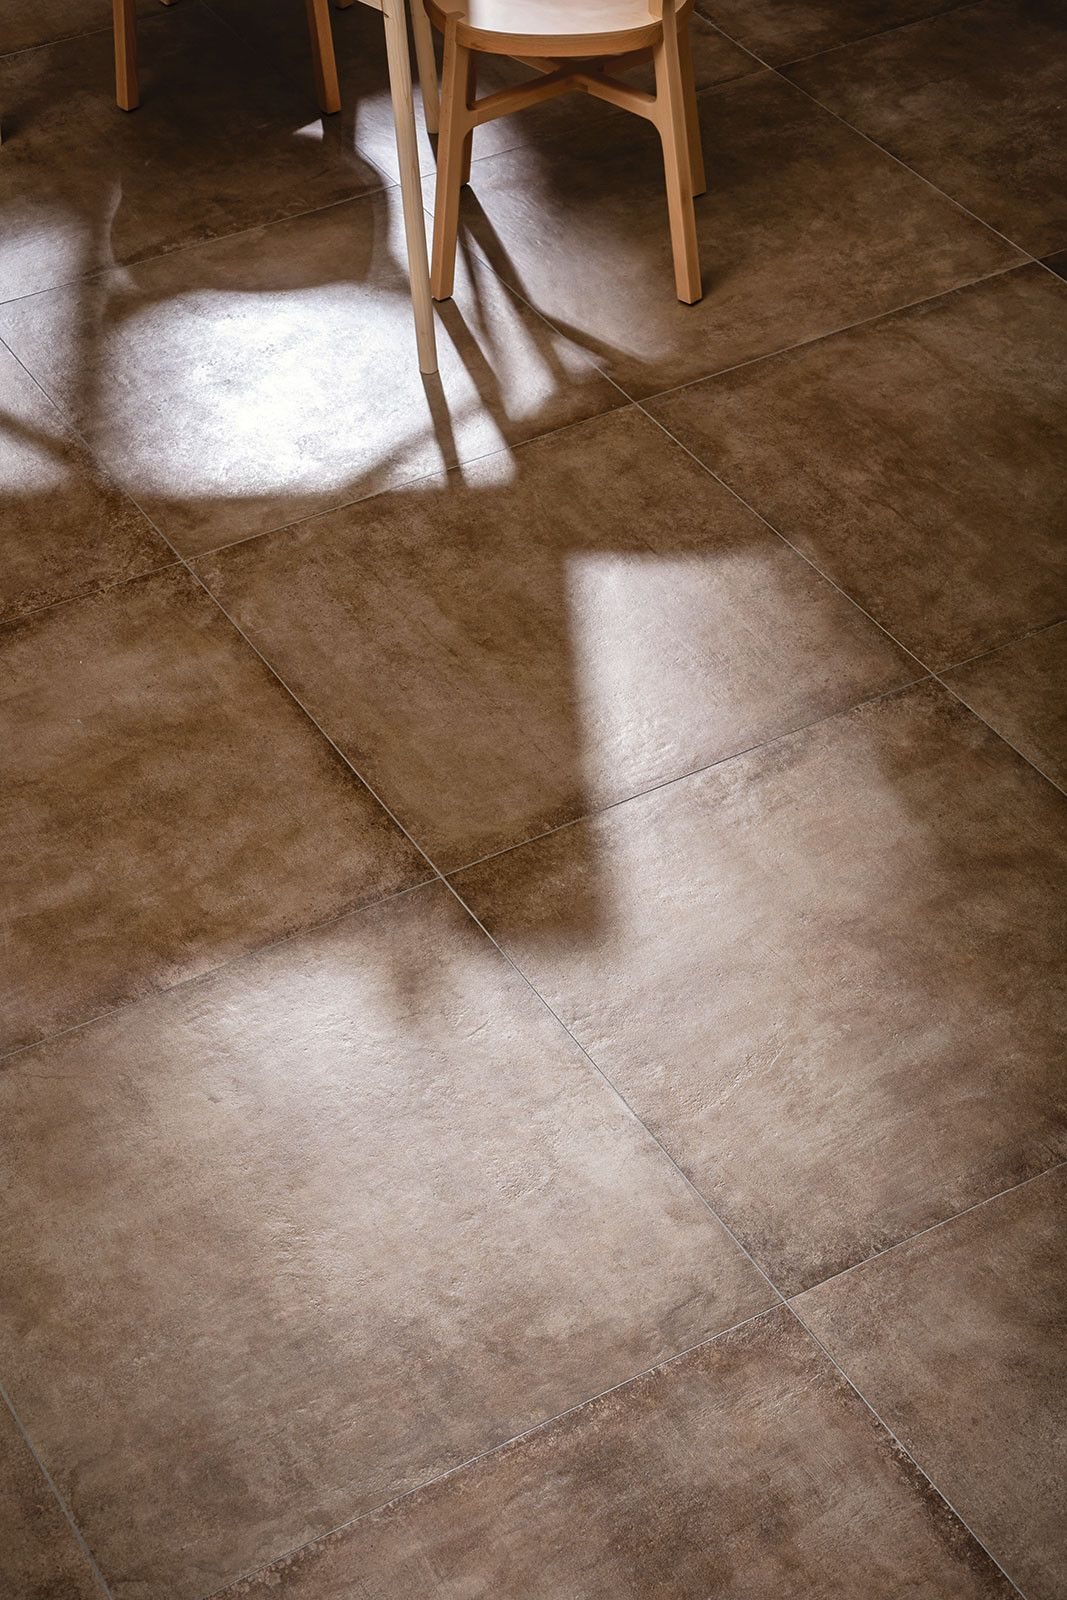 Marazzi clays earth outdoor 7x28 cm mmam feinsteinzeug available on all the porcelain stoneware flooring by marazzi clays at the best price guaranteed discover marazzi clays earth cm cement effect with all dailygadgetfo Choice Image